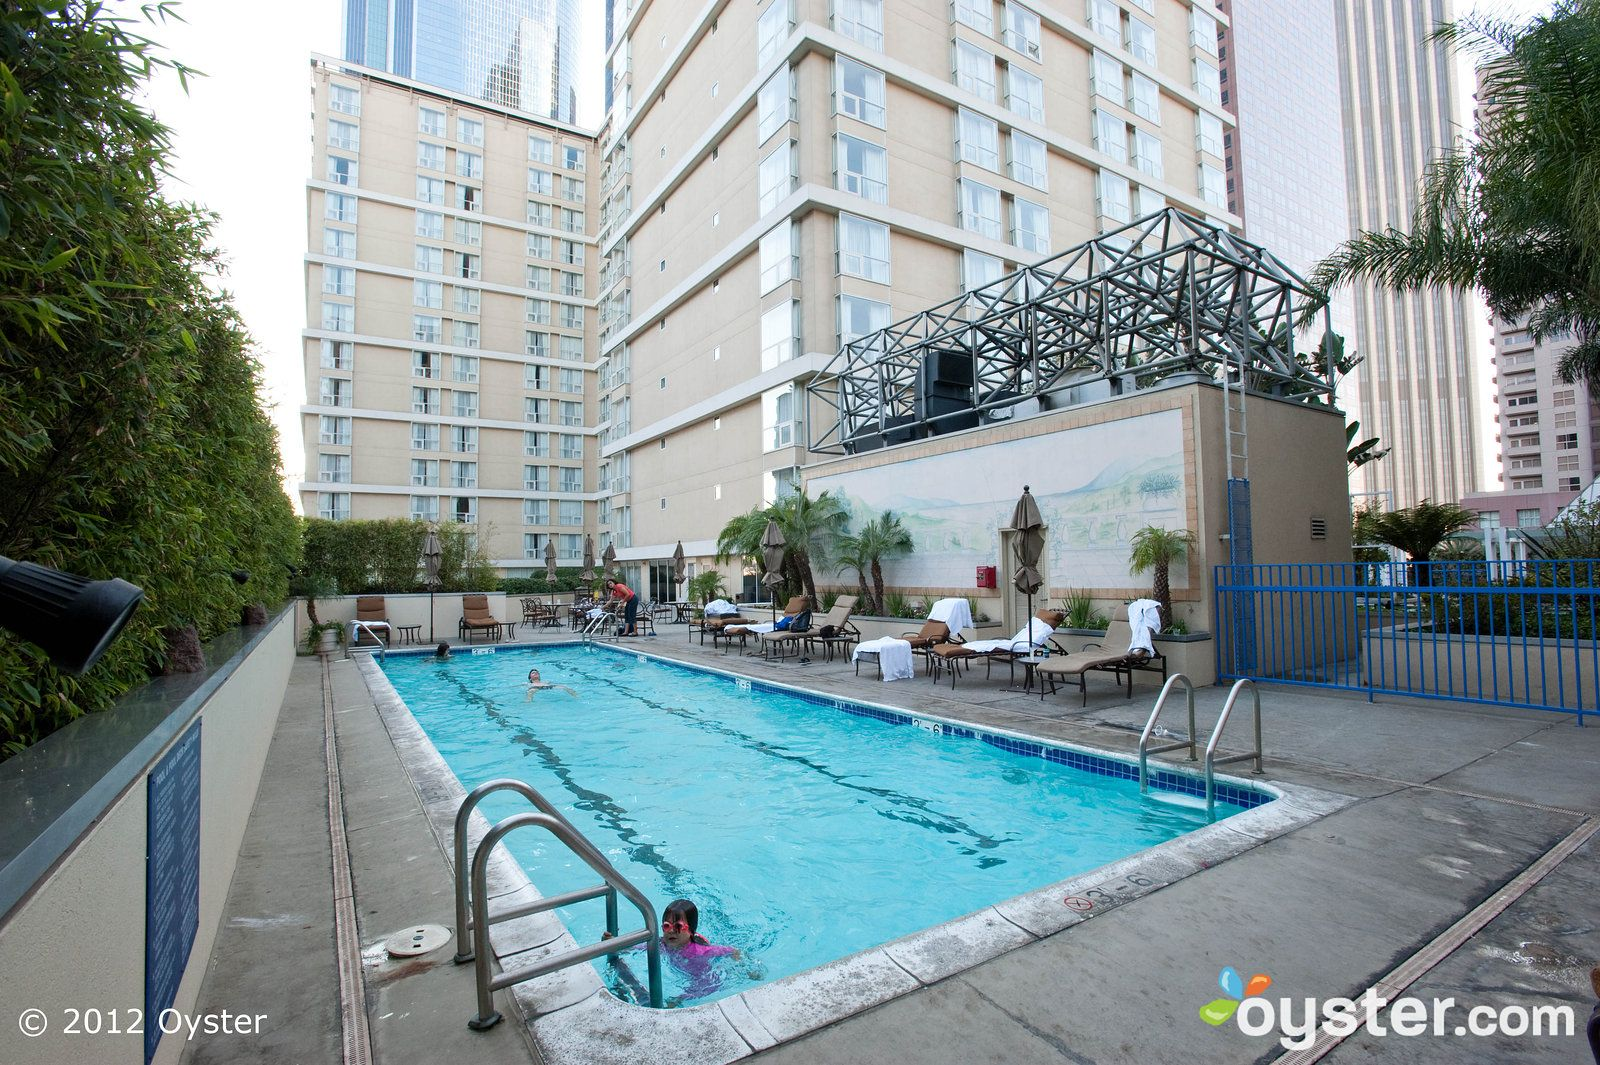 Other Kid Friendly Hotel Called Omni L A Which Is Located In Downtown Los Angeles Los Angeles Hotels Kid Friendly Hotels Los Angeles